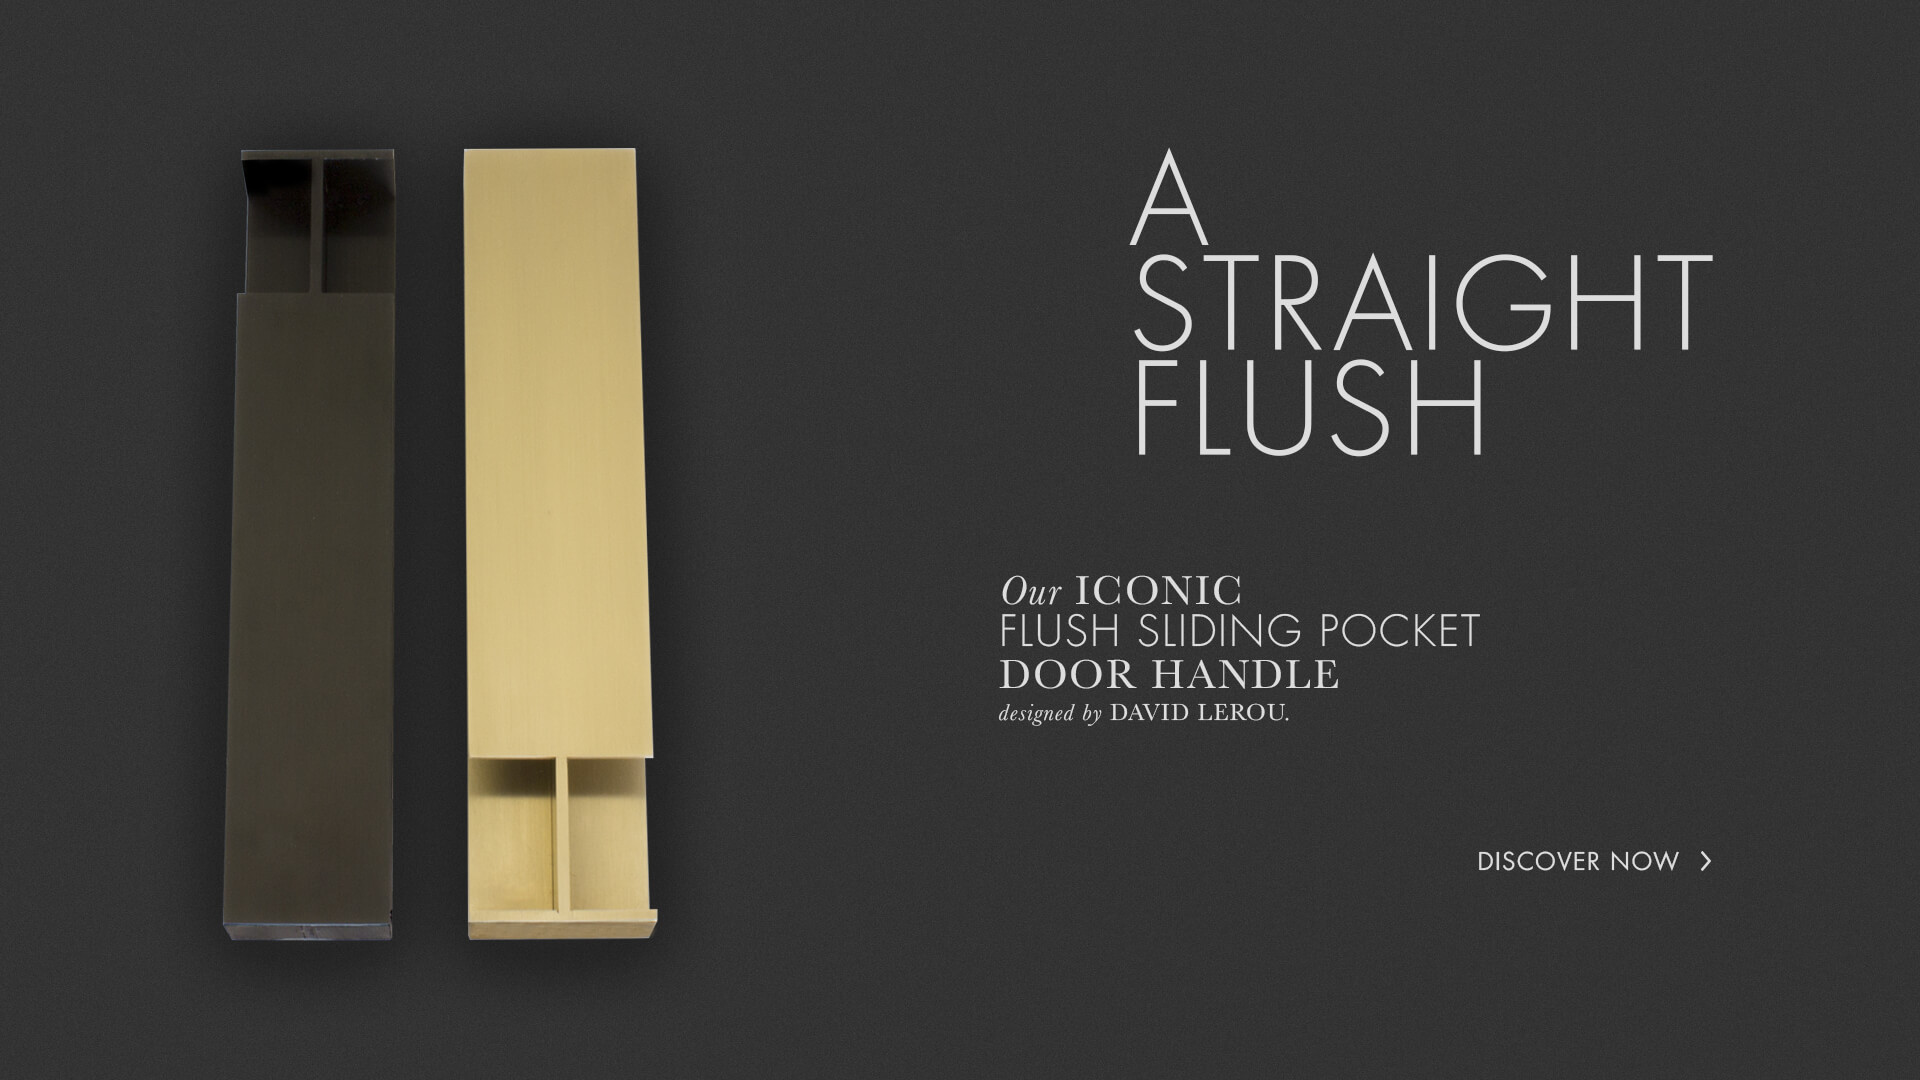 Our Iconic Flush Sliding Pocket Door Handle Designed by David Lerou.